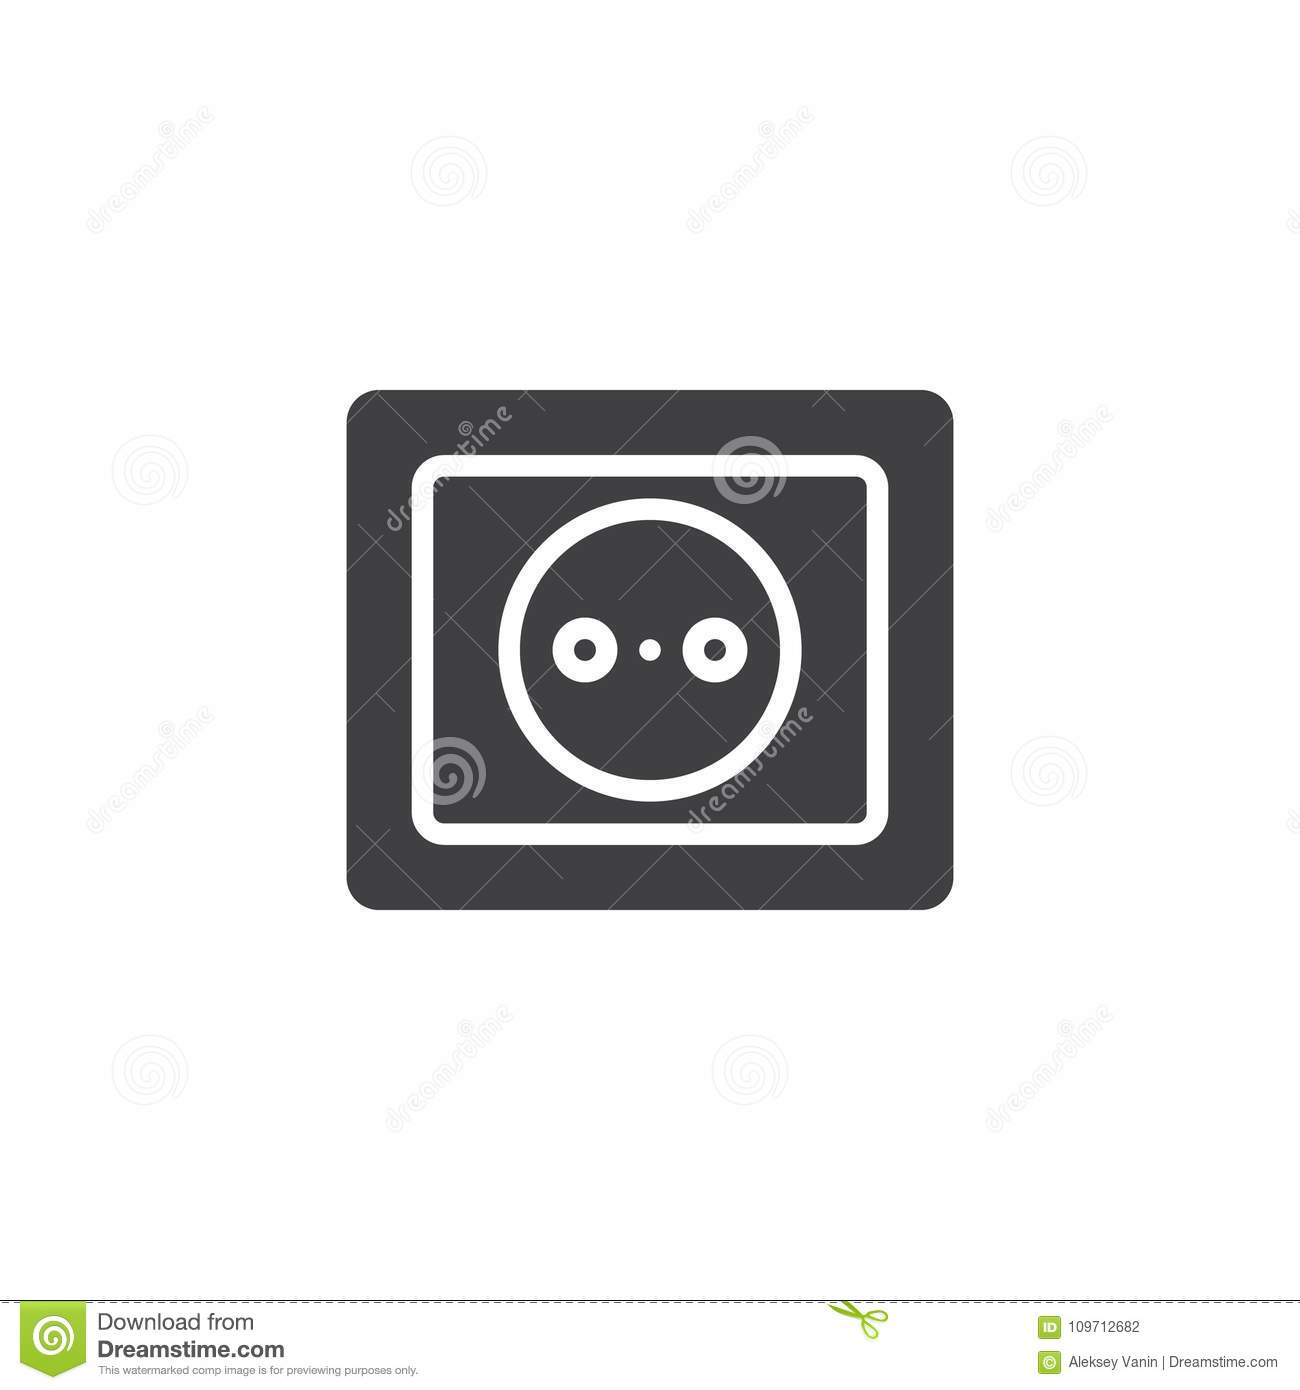 Power Socket Icon Vector Stock Vector Illustration Of Outlet